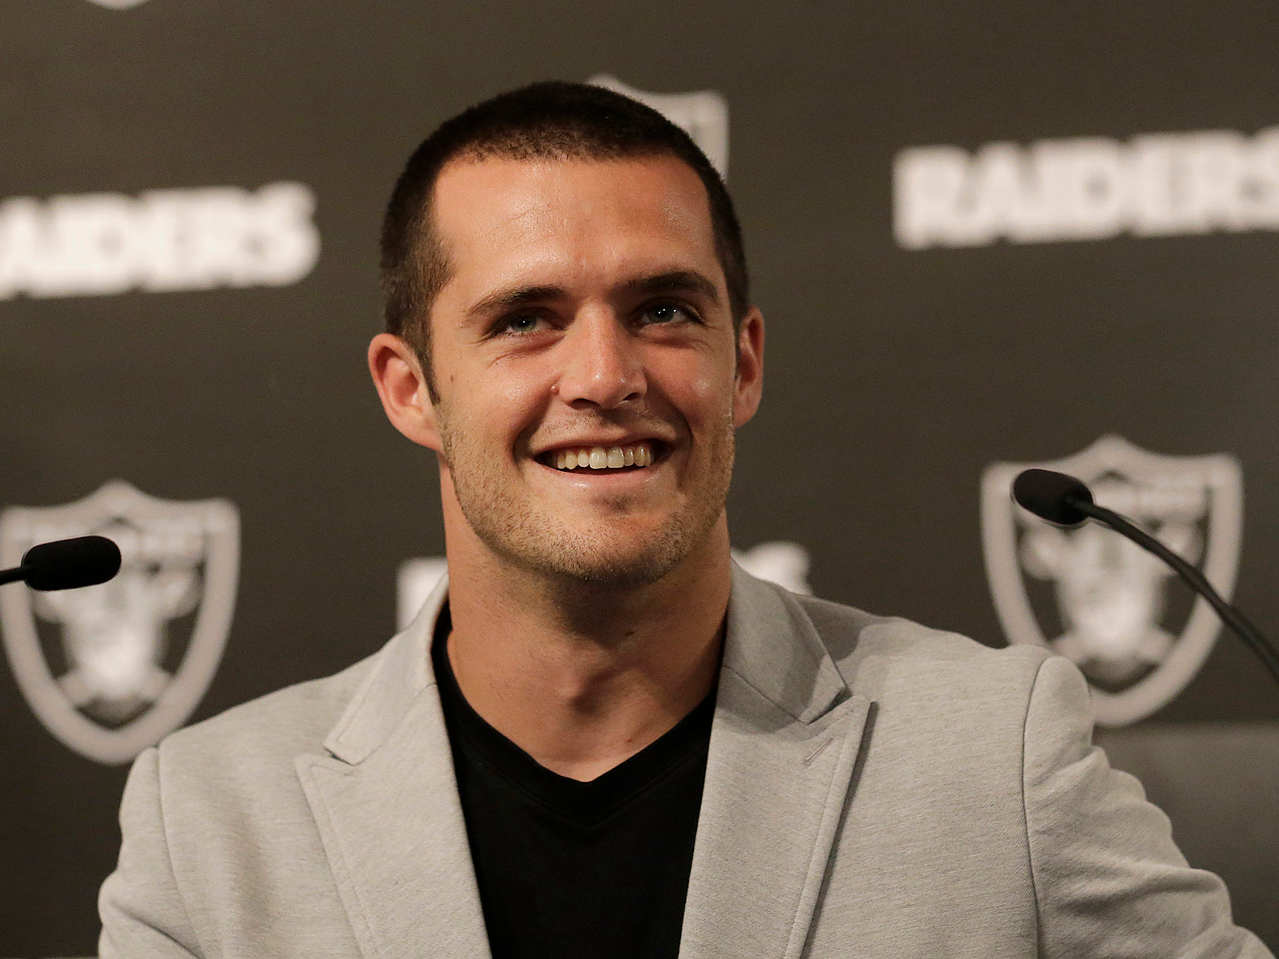 Derek Carr had a great answer to his first purchase after signing